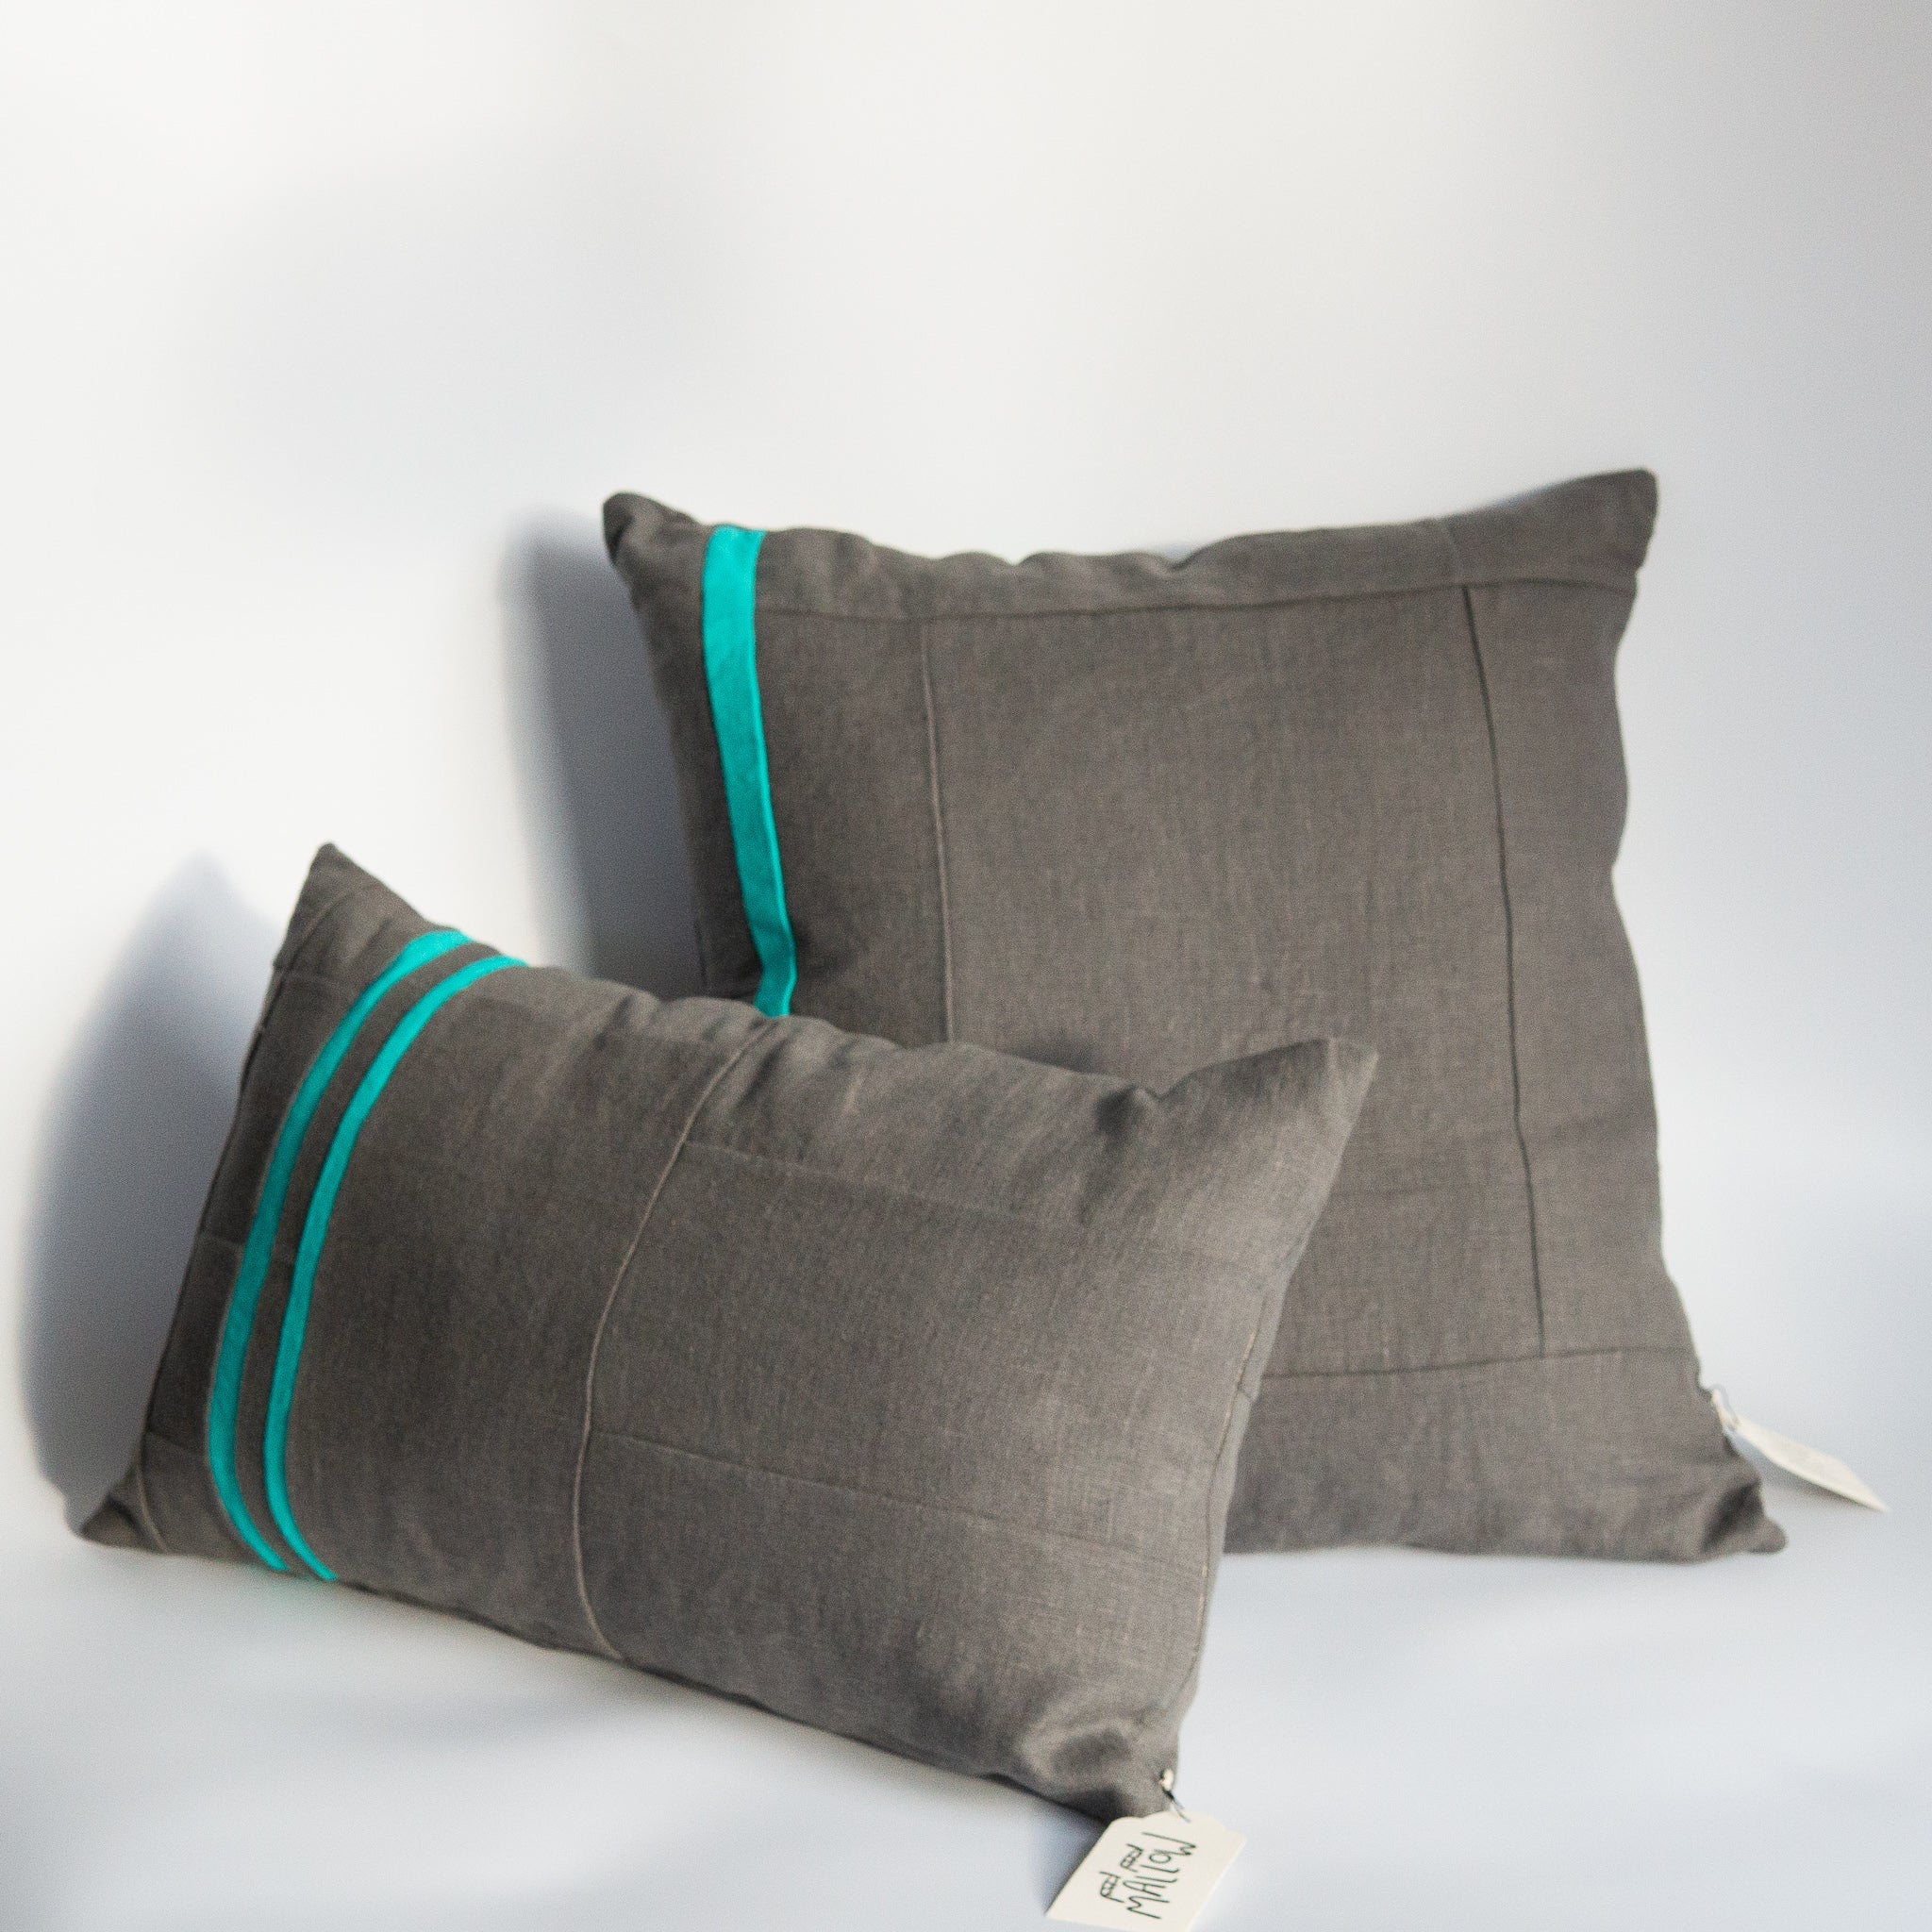 Mallow Soft Goods: Slate/Teal Linen Pillows